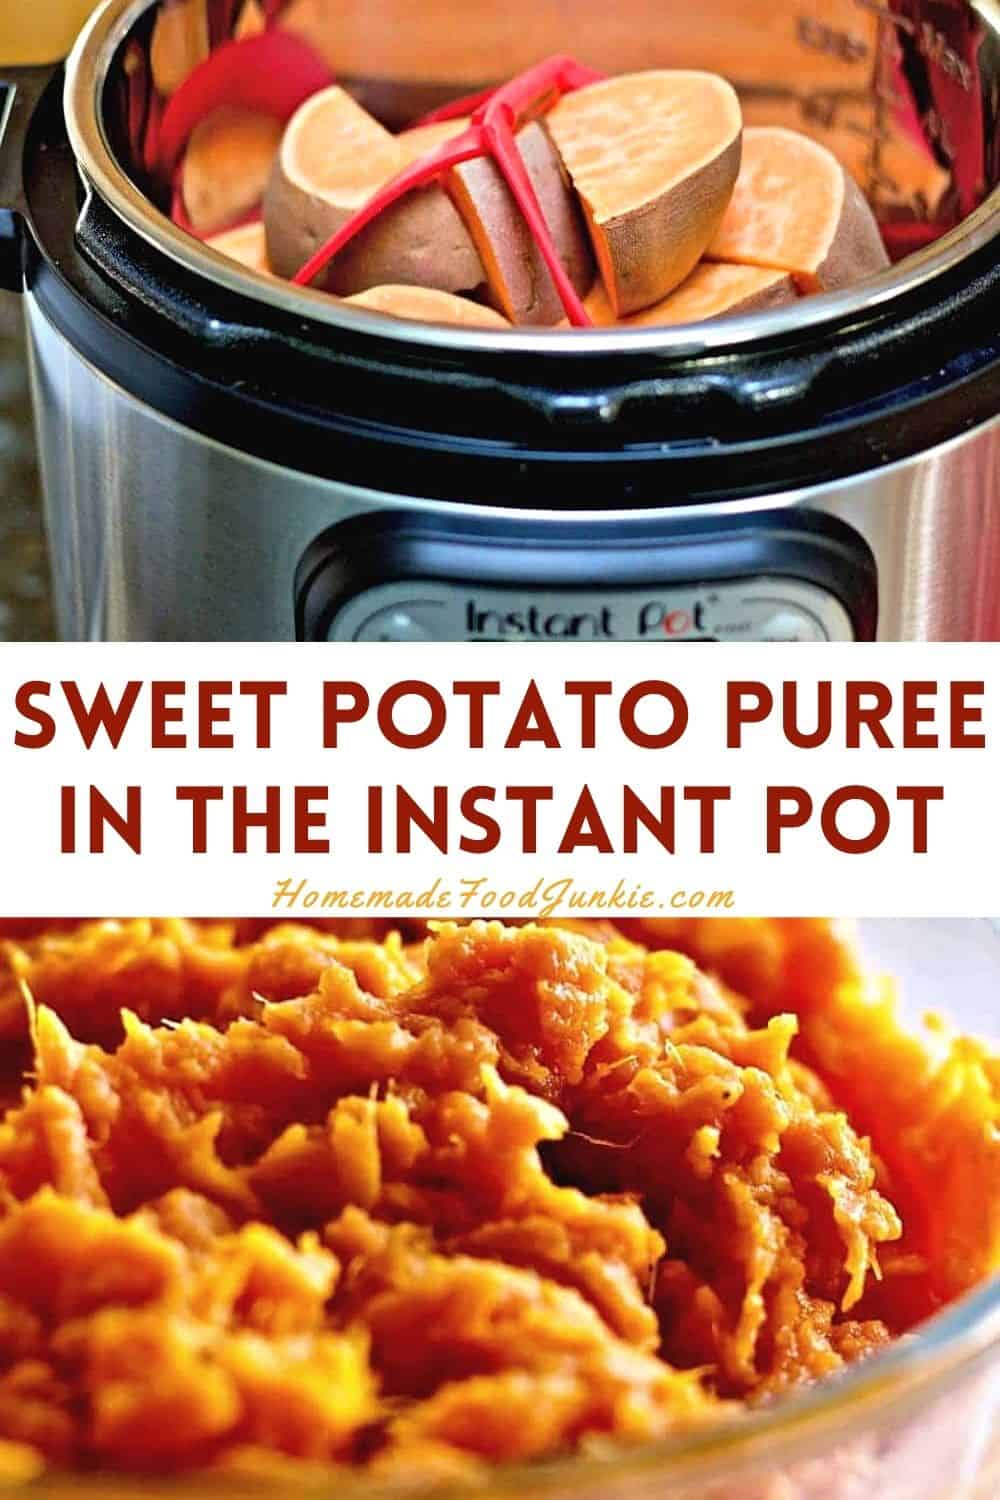 Sweet potato puree in the instant pot-pin image